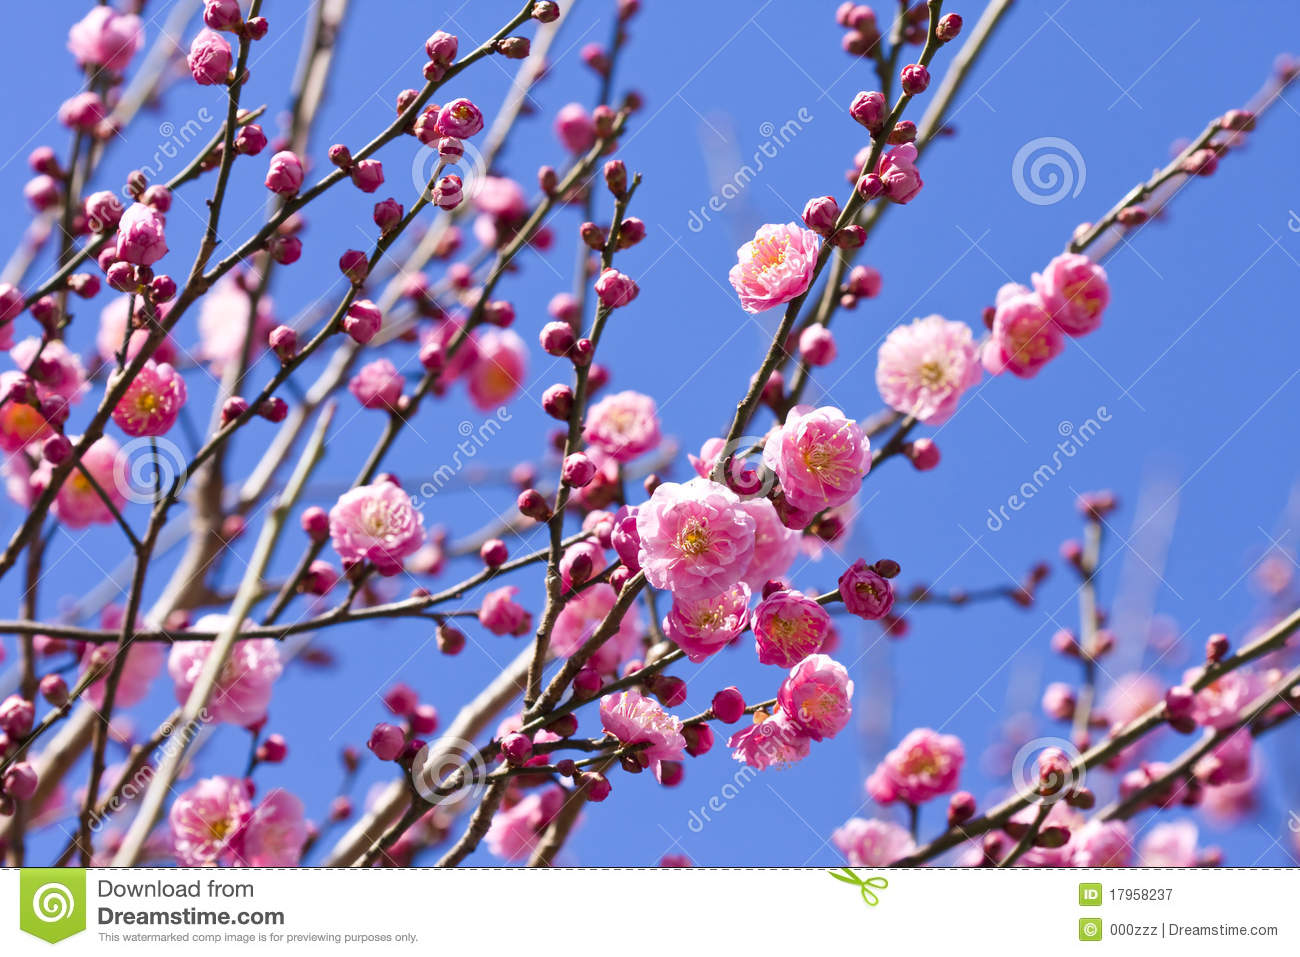 Spring plum blossom branches pink flower